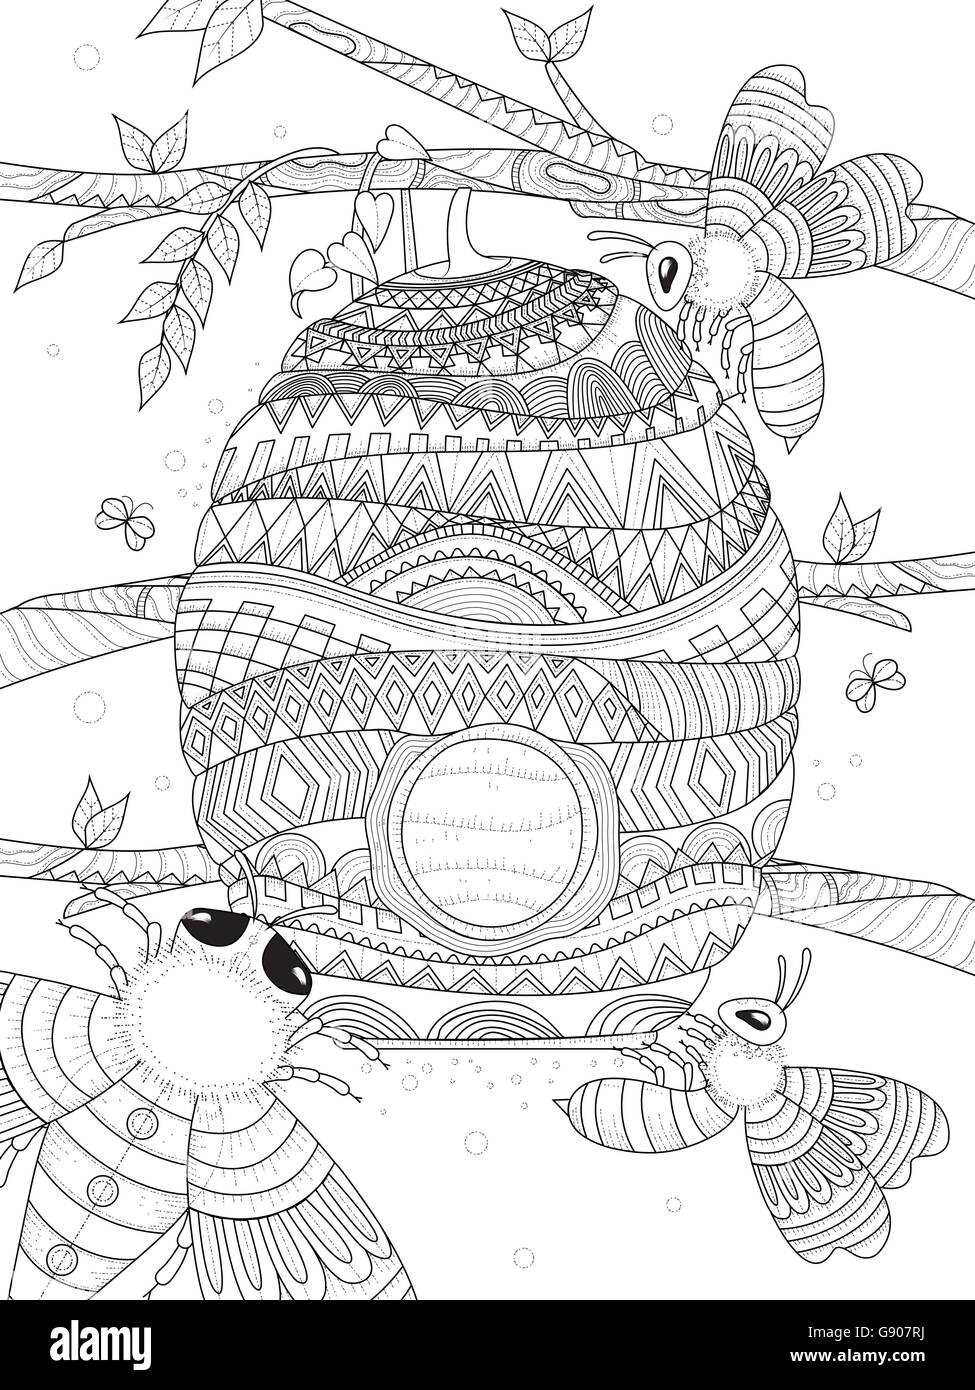 Bee Flies Around Honeycomb Adult Coloring Page Stock